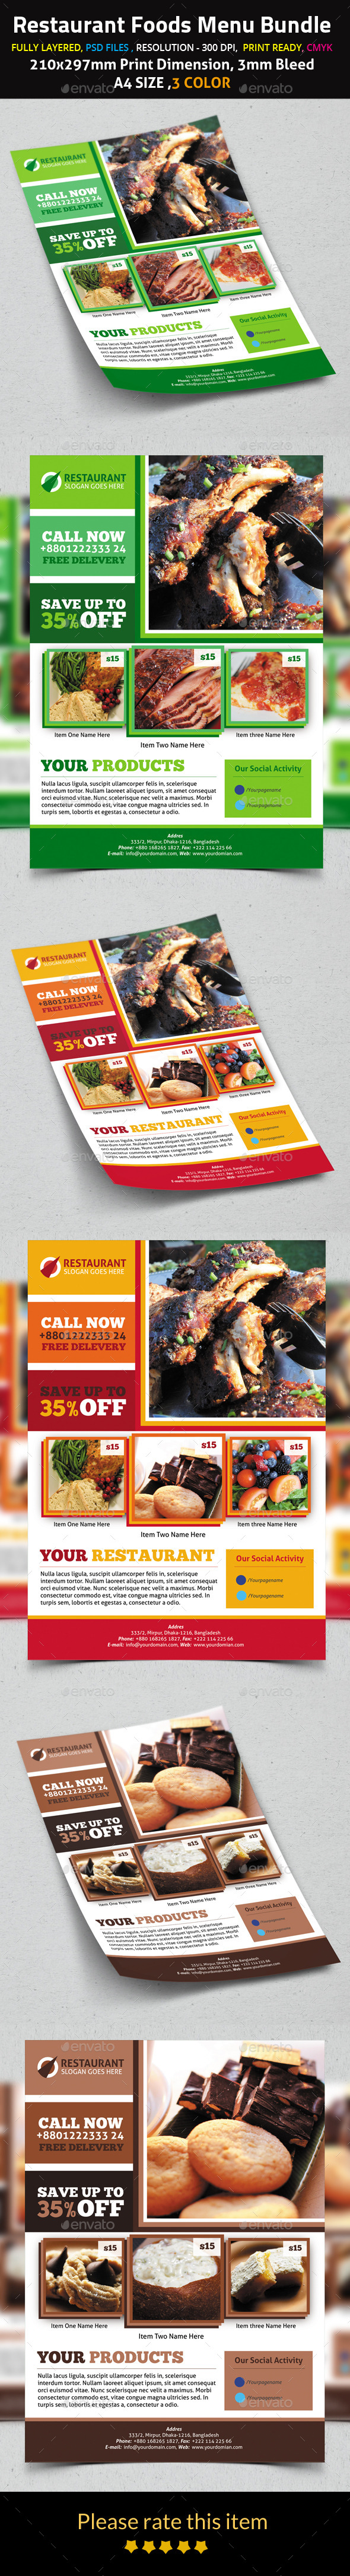 Products Foods Flyer Template - Corporate Flyers